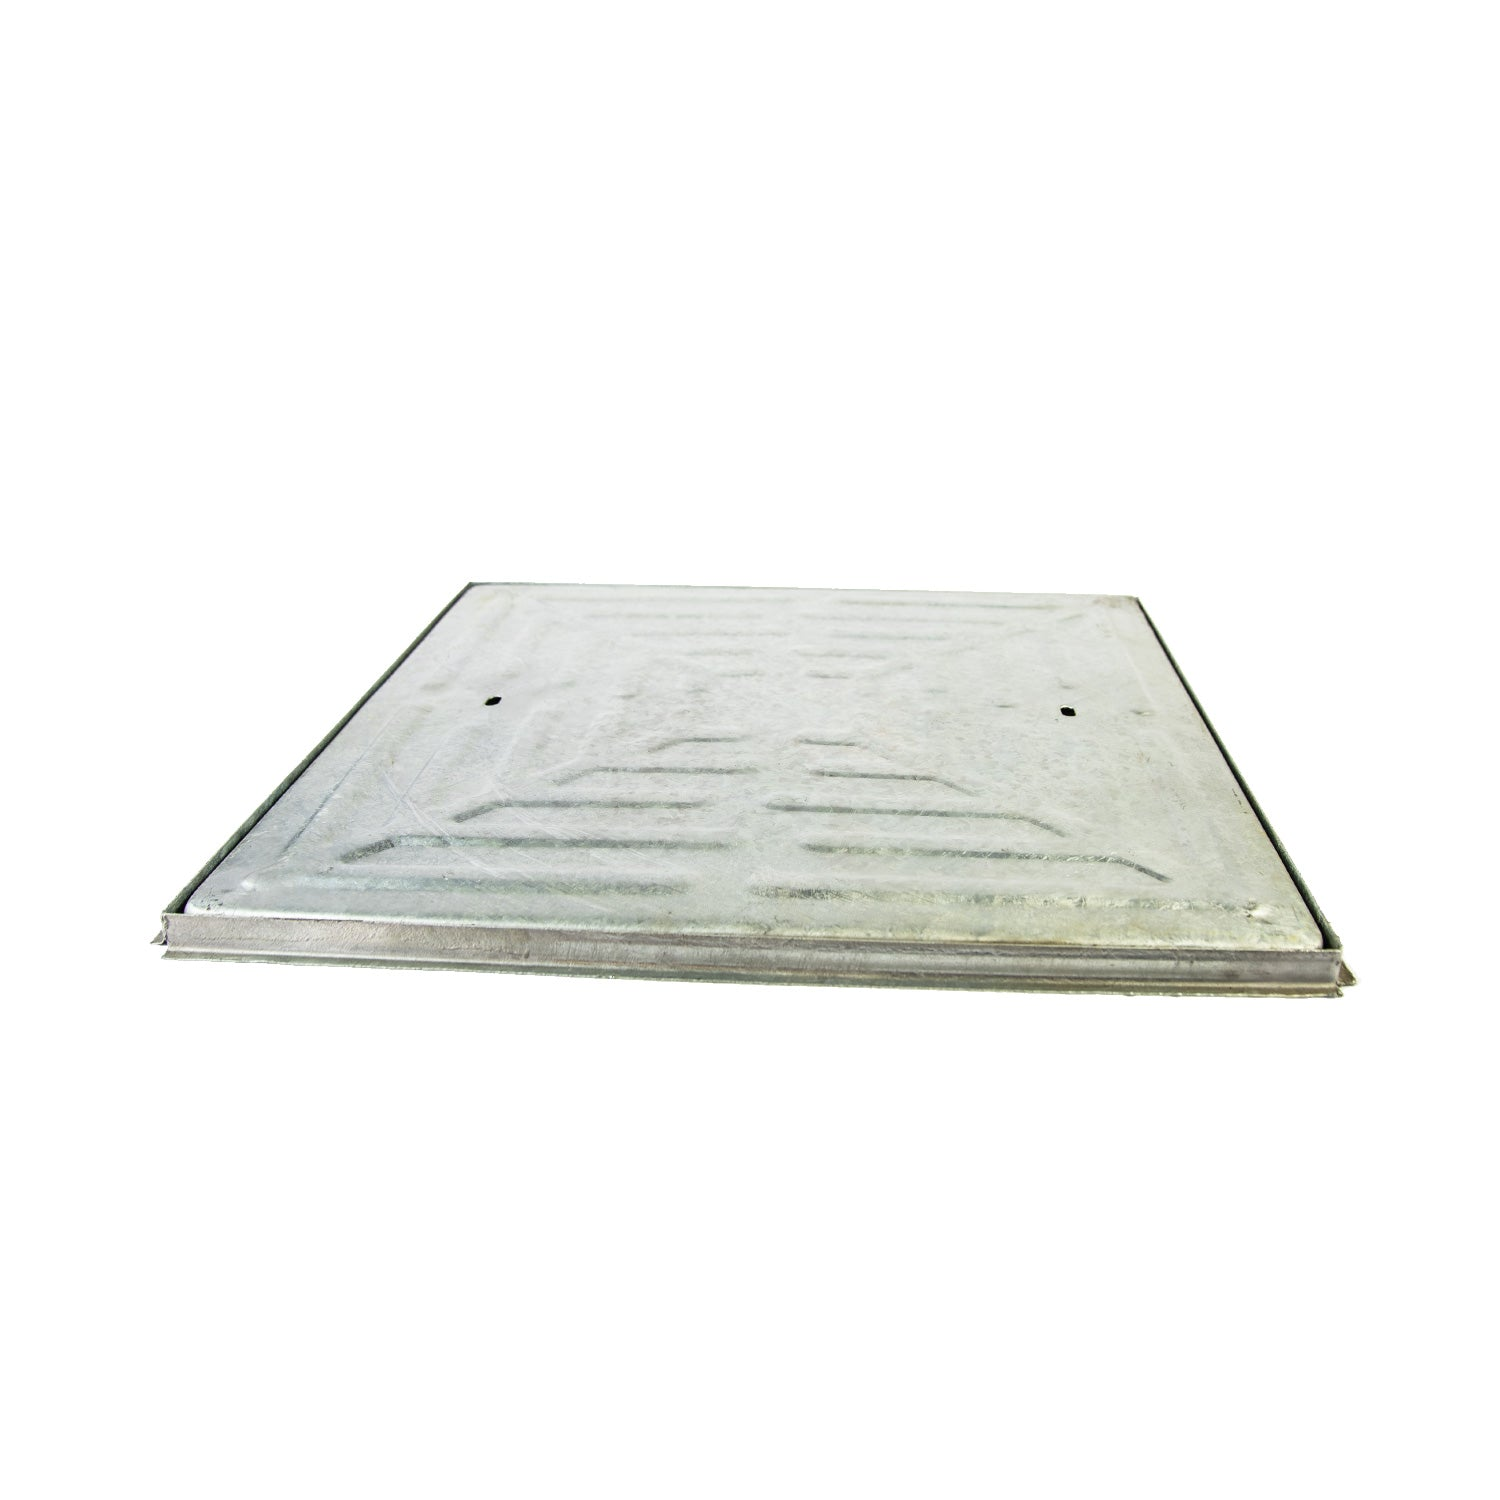 10T Manhole Cover & Frame 600mm x 450mm